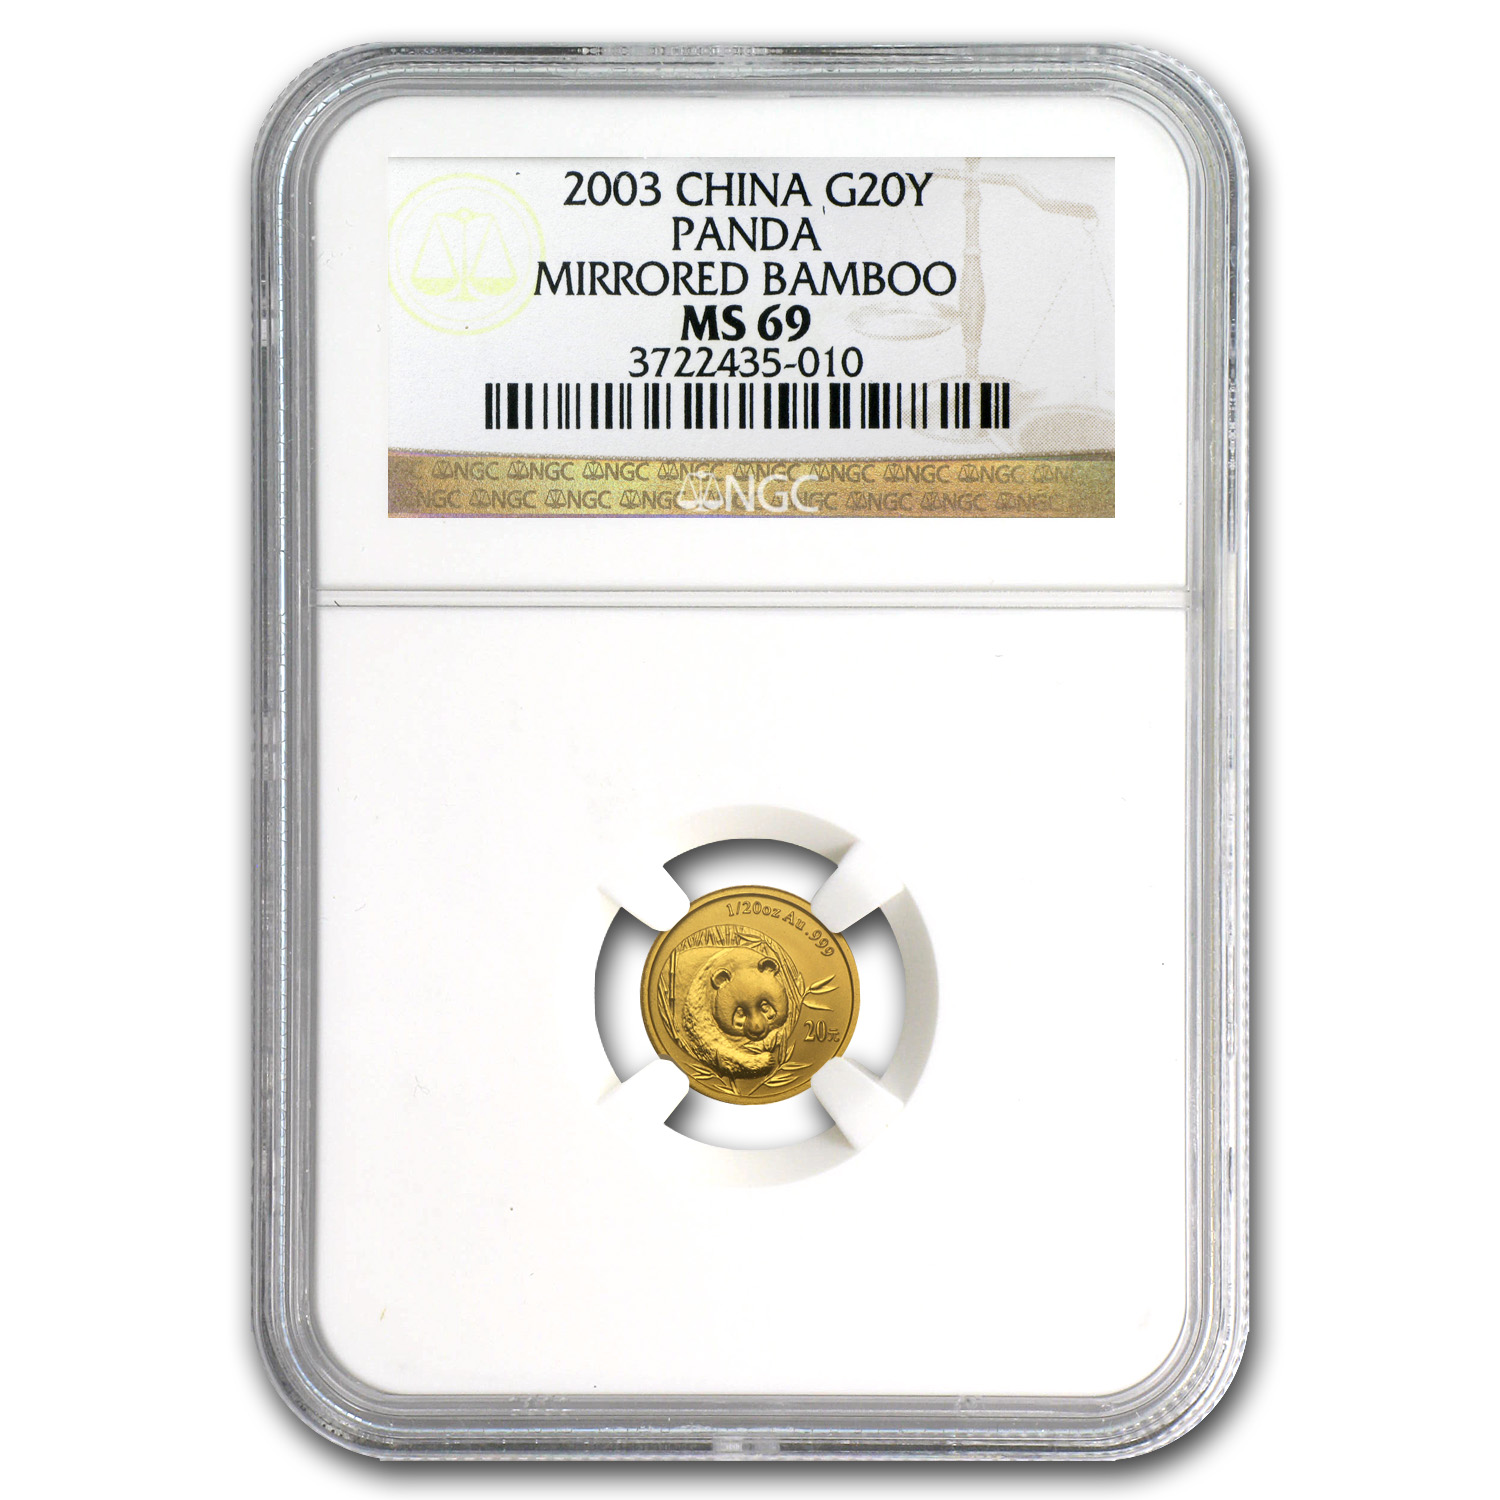 2003 1/20 oz Gold Chinese Panda Mirrored Bamboo MS-69 NGC